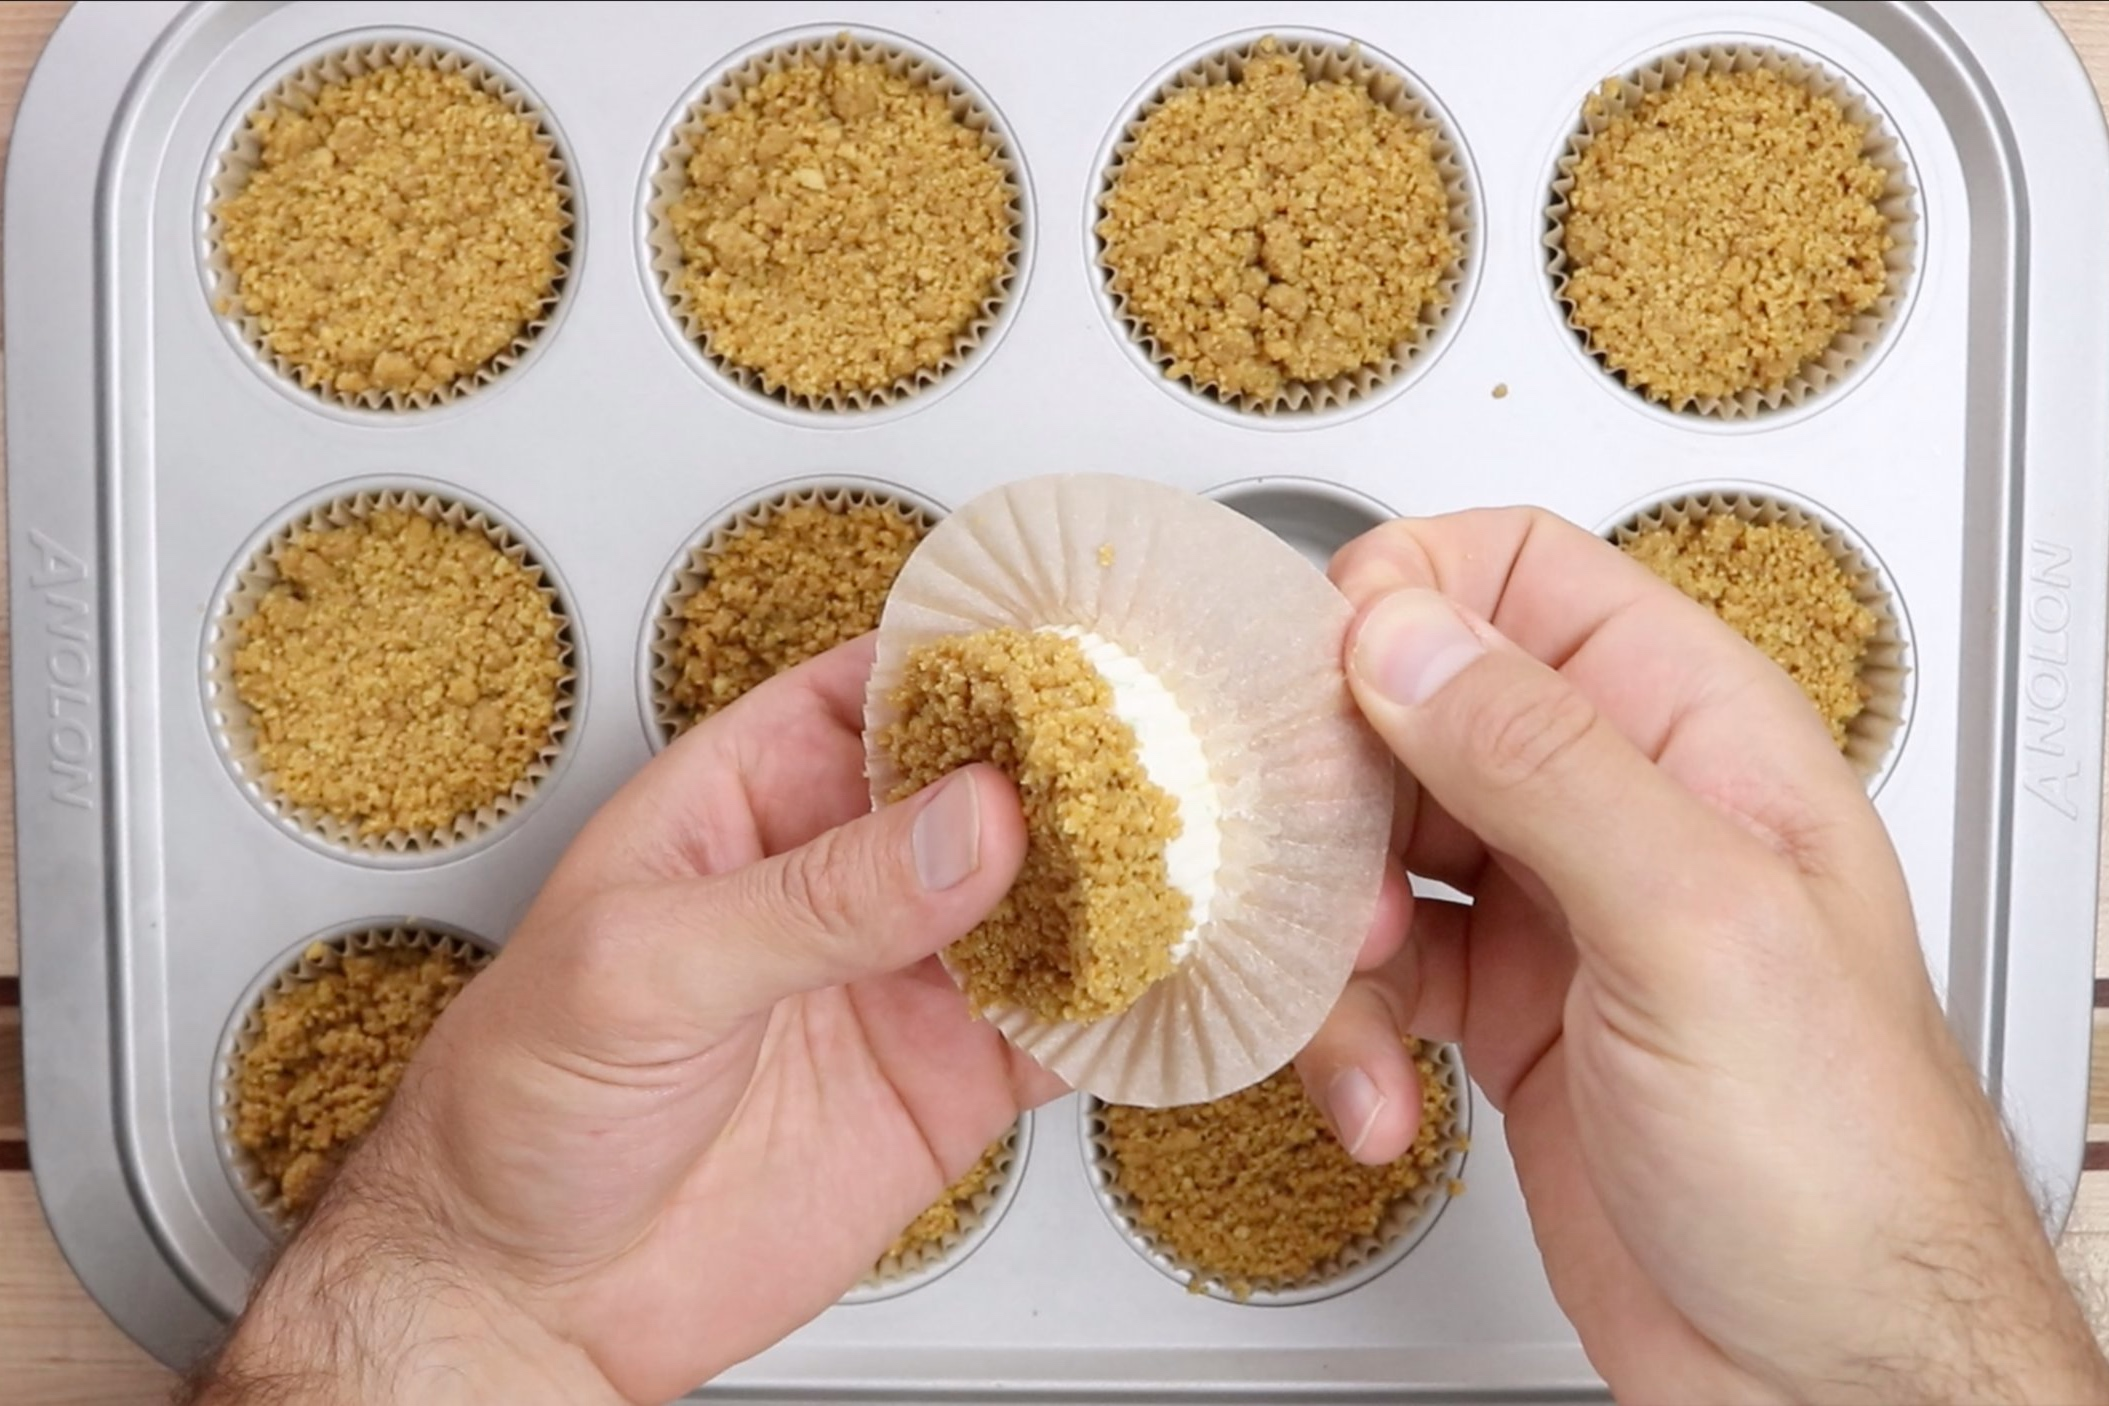 13. Gently remove the pies from the baking cups and place them graham cracker side down. -